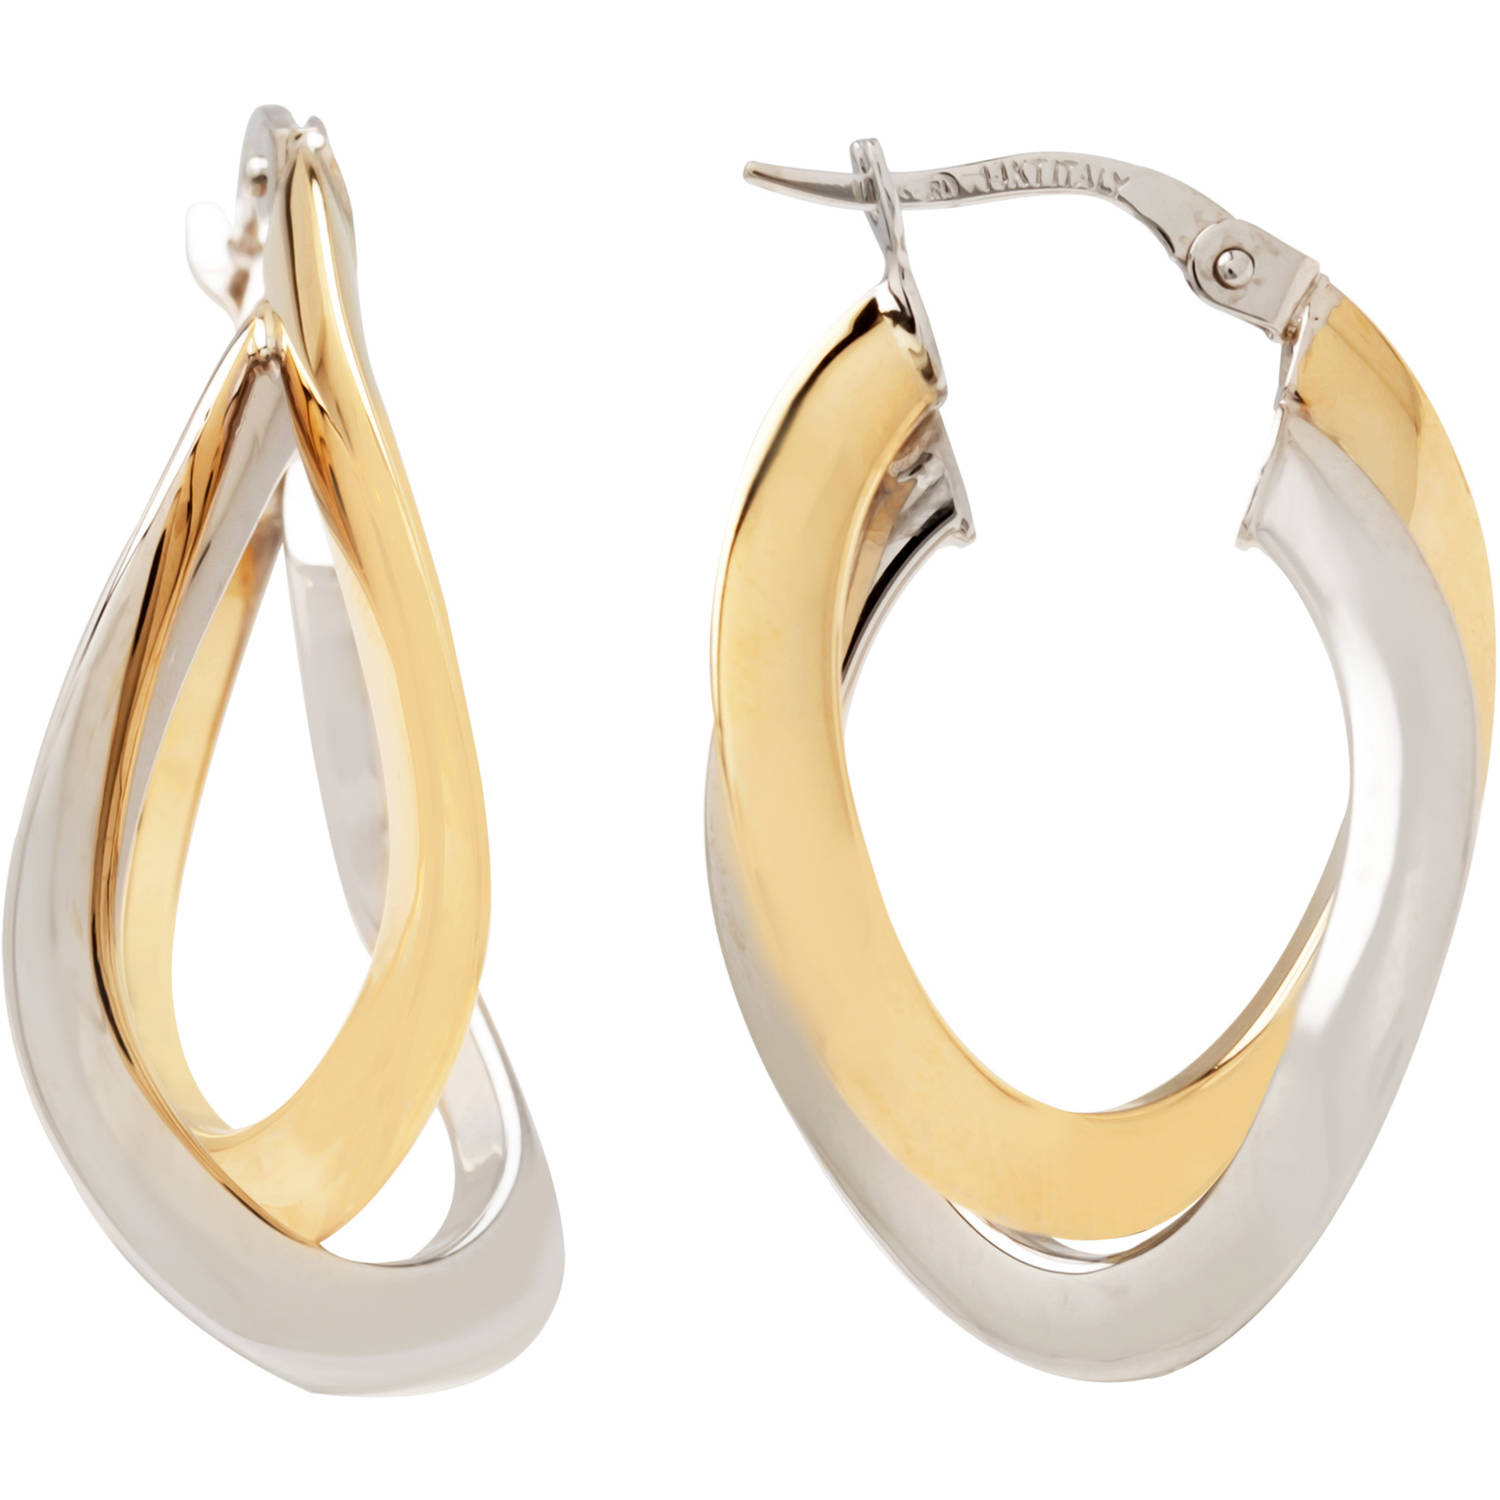 "Simply Gold 14kt Yellow and White Gold 1"" Double Oval Hoop Earrings"